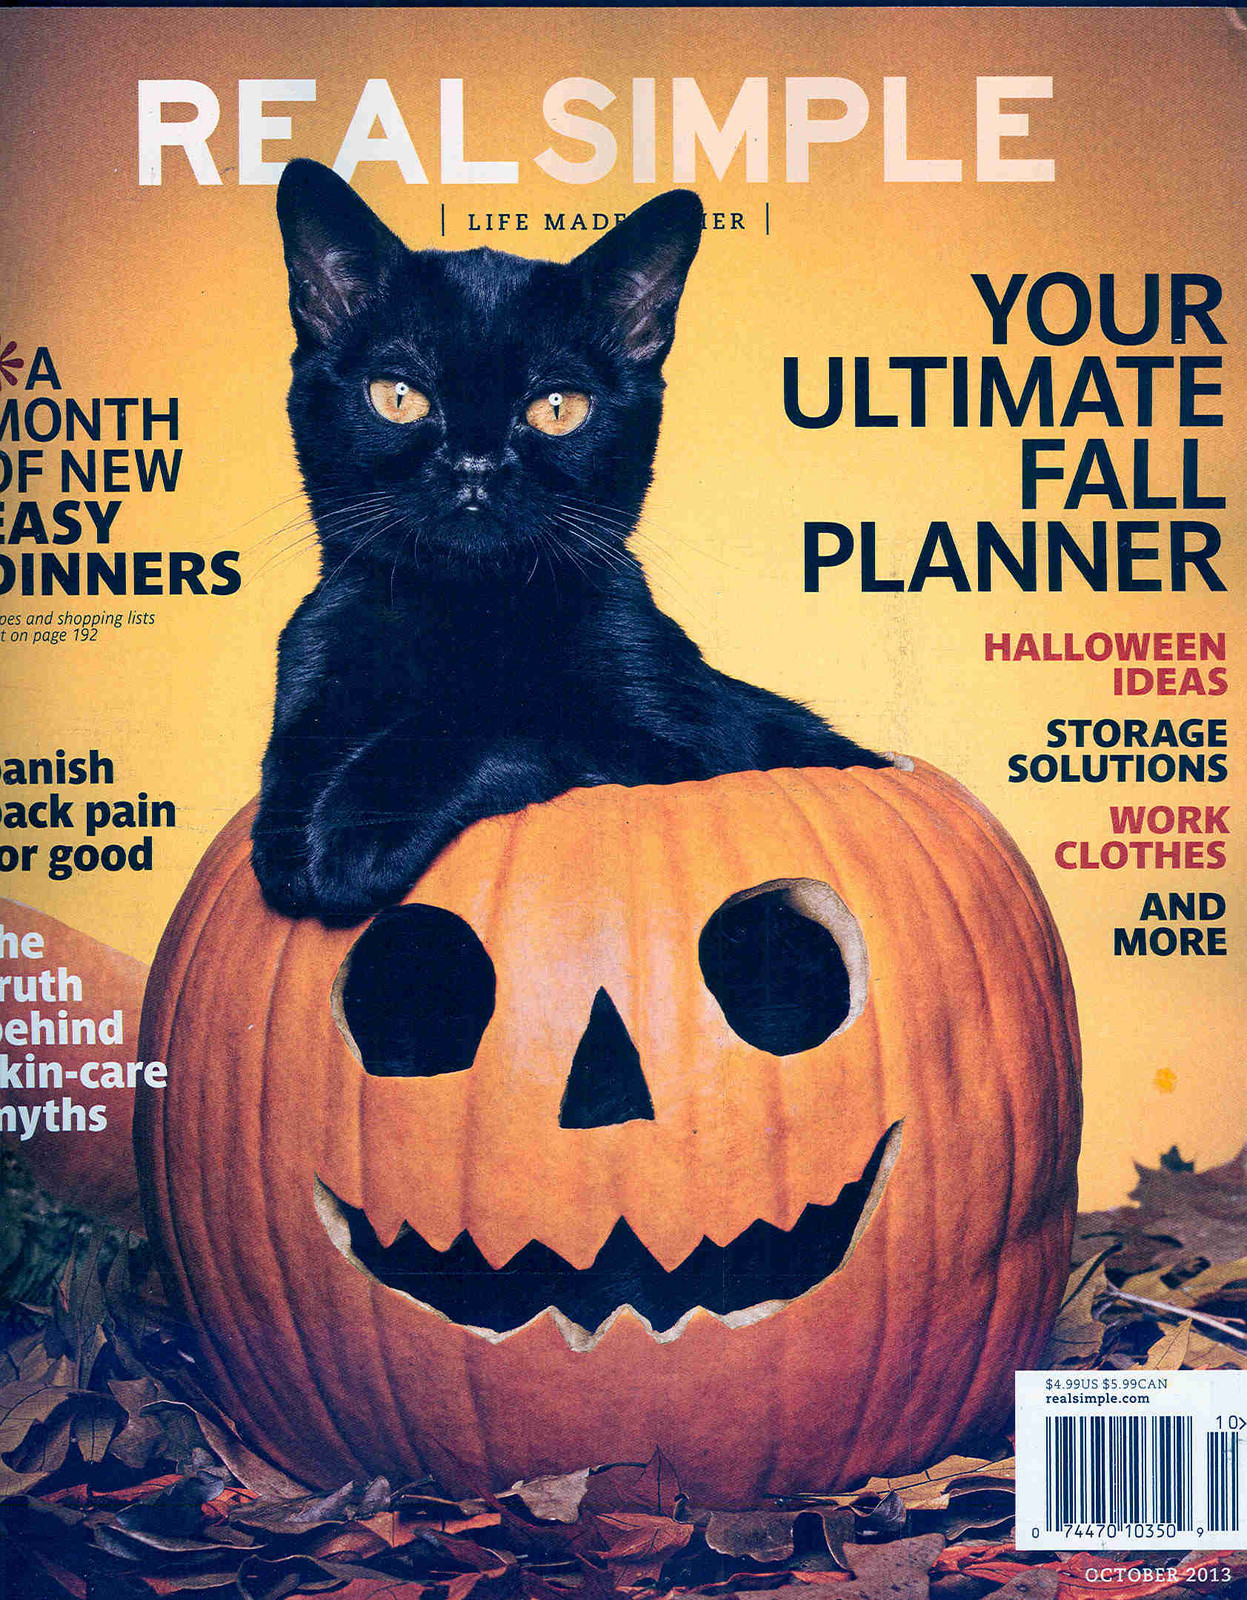 Vintage Halloween Collector: Real Simple October 2013 Issue